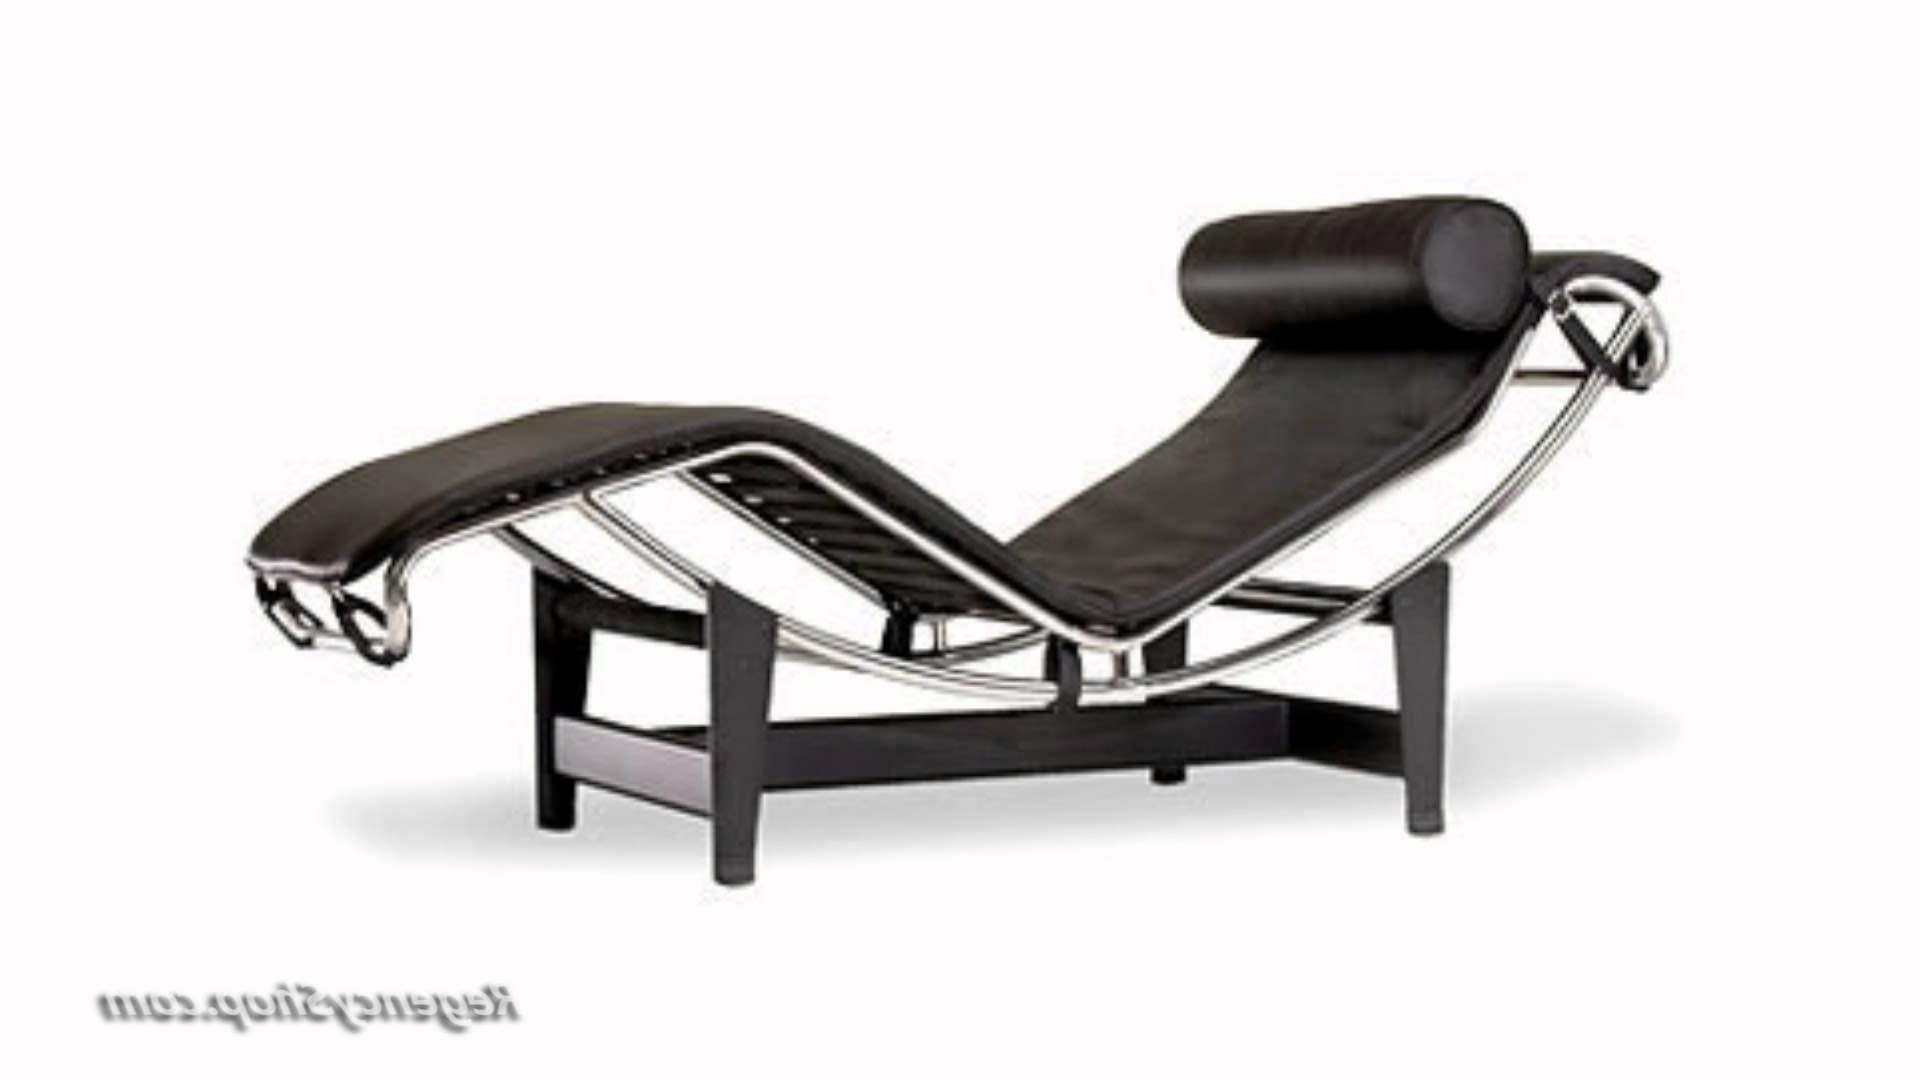 Le Corbusier Chaise Lounges In Trendy Le Corbusier Lc4 Chaise Lounge Chair – Regencyshop – Youtube (View 10 of 15)